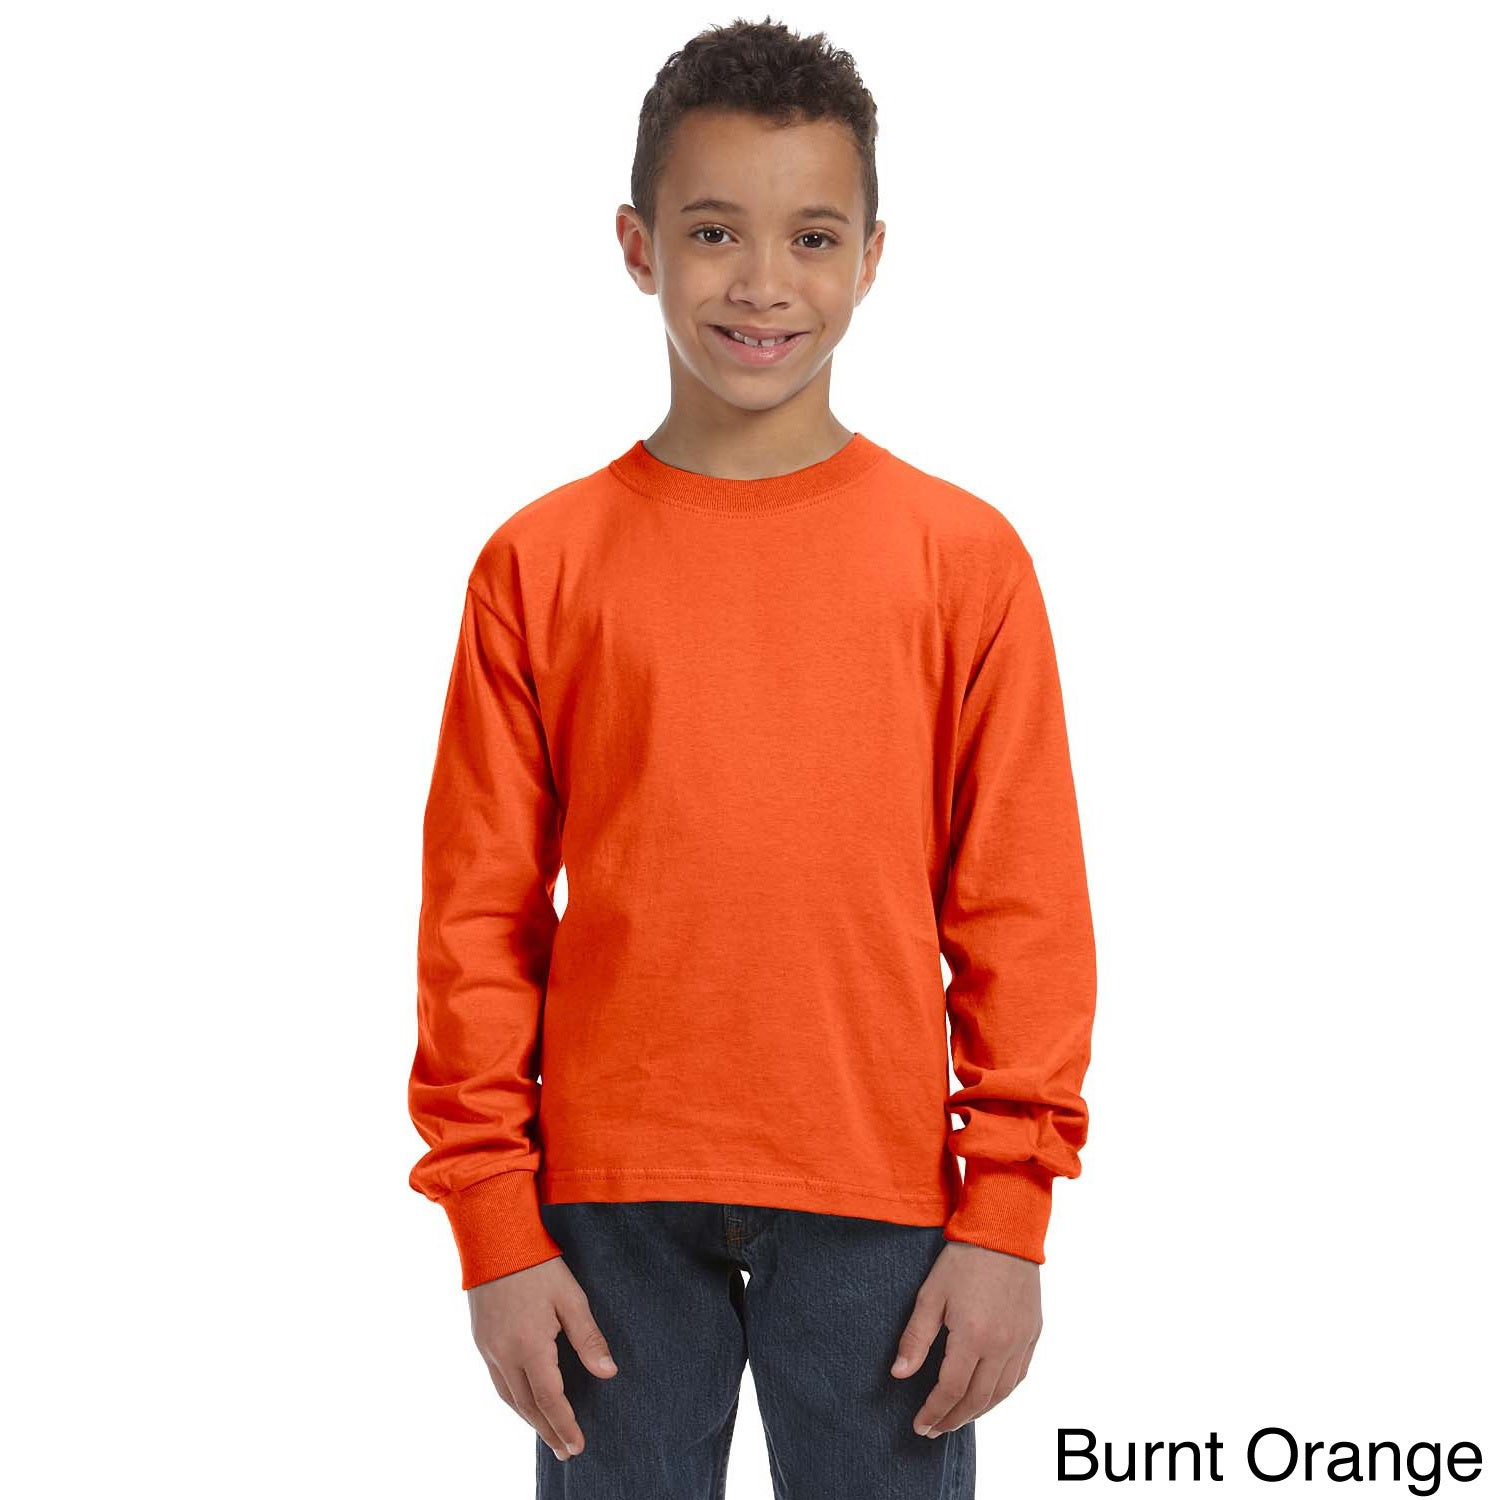 Fruit Of The Loom Fruit Of The Loom Youth Heavy Cotton Hd Long Sleeve T shirt Orange Size L (14 16)